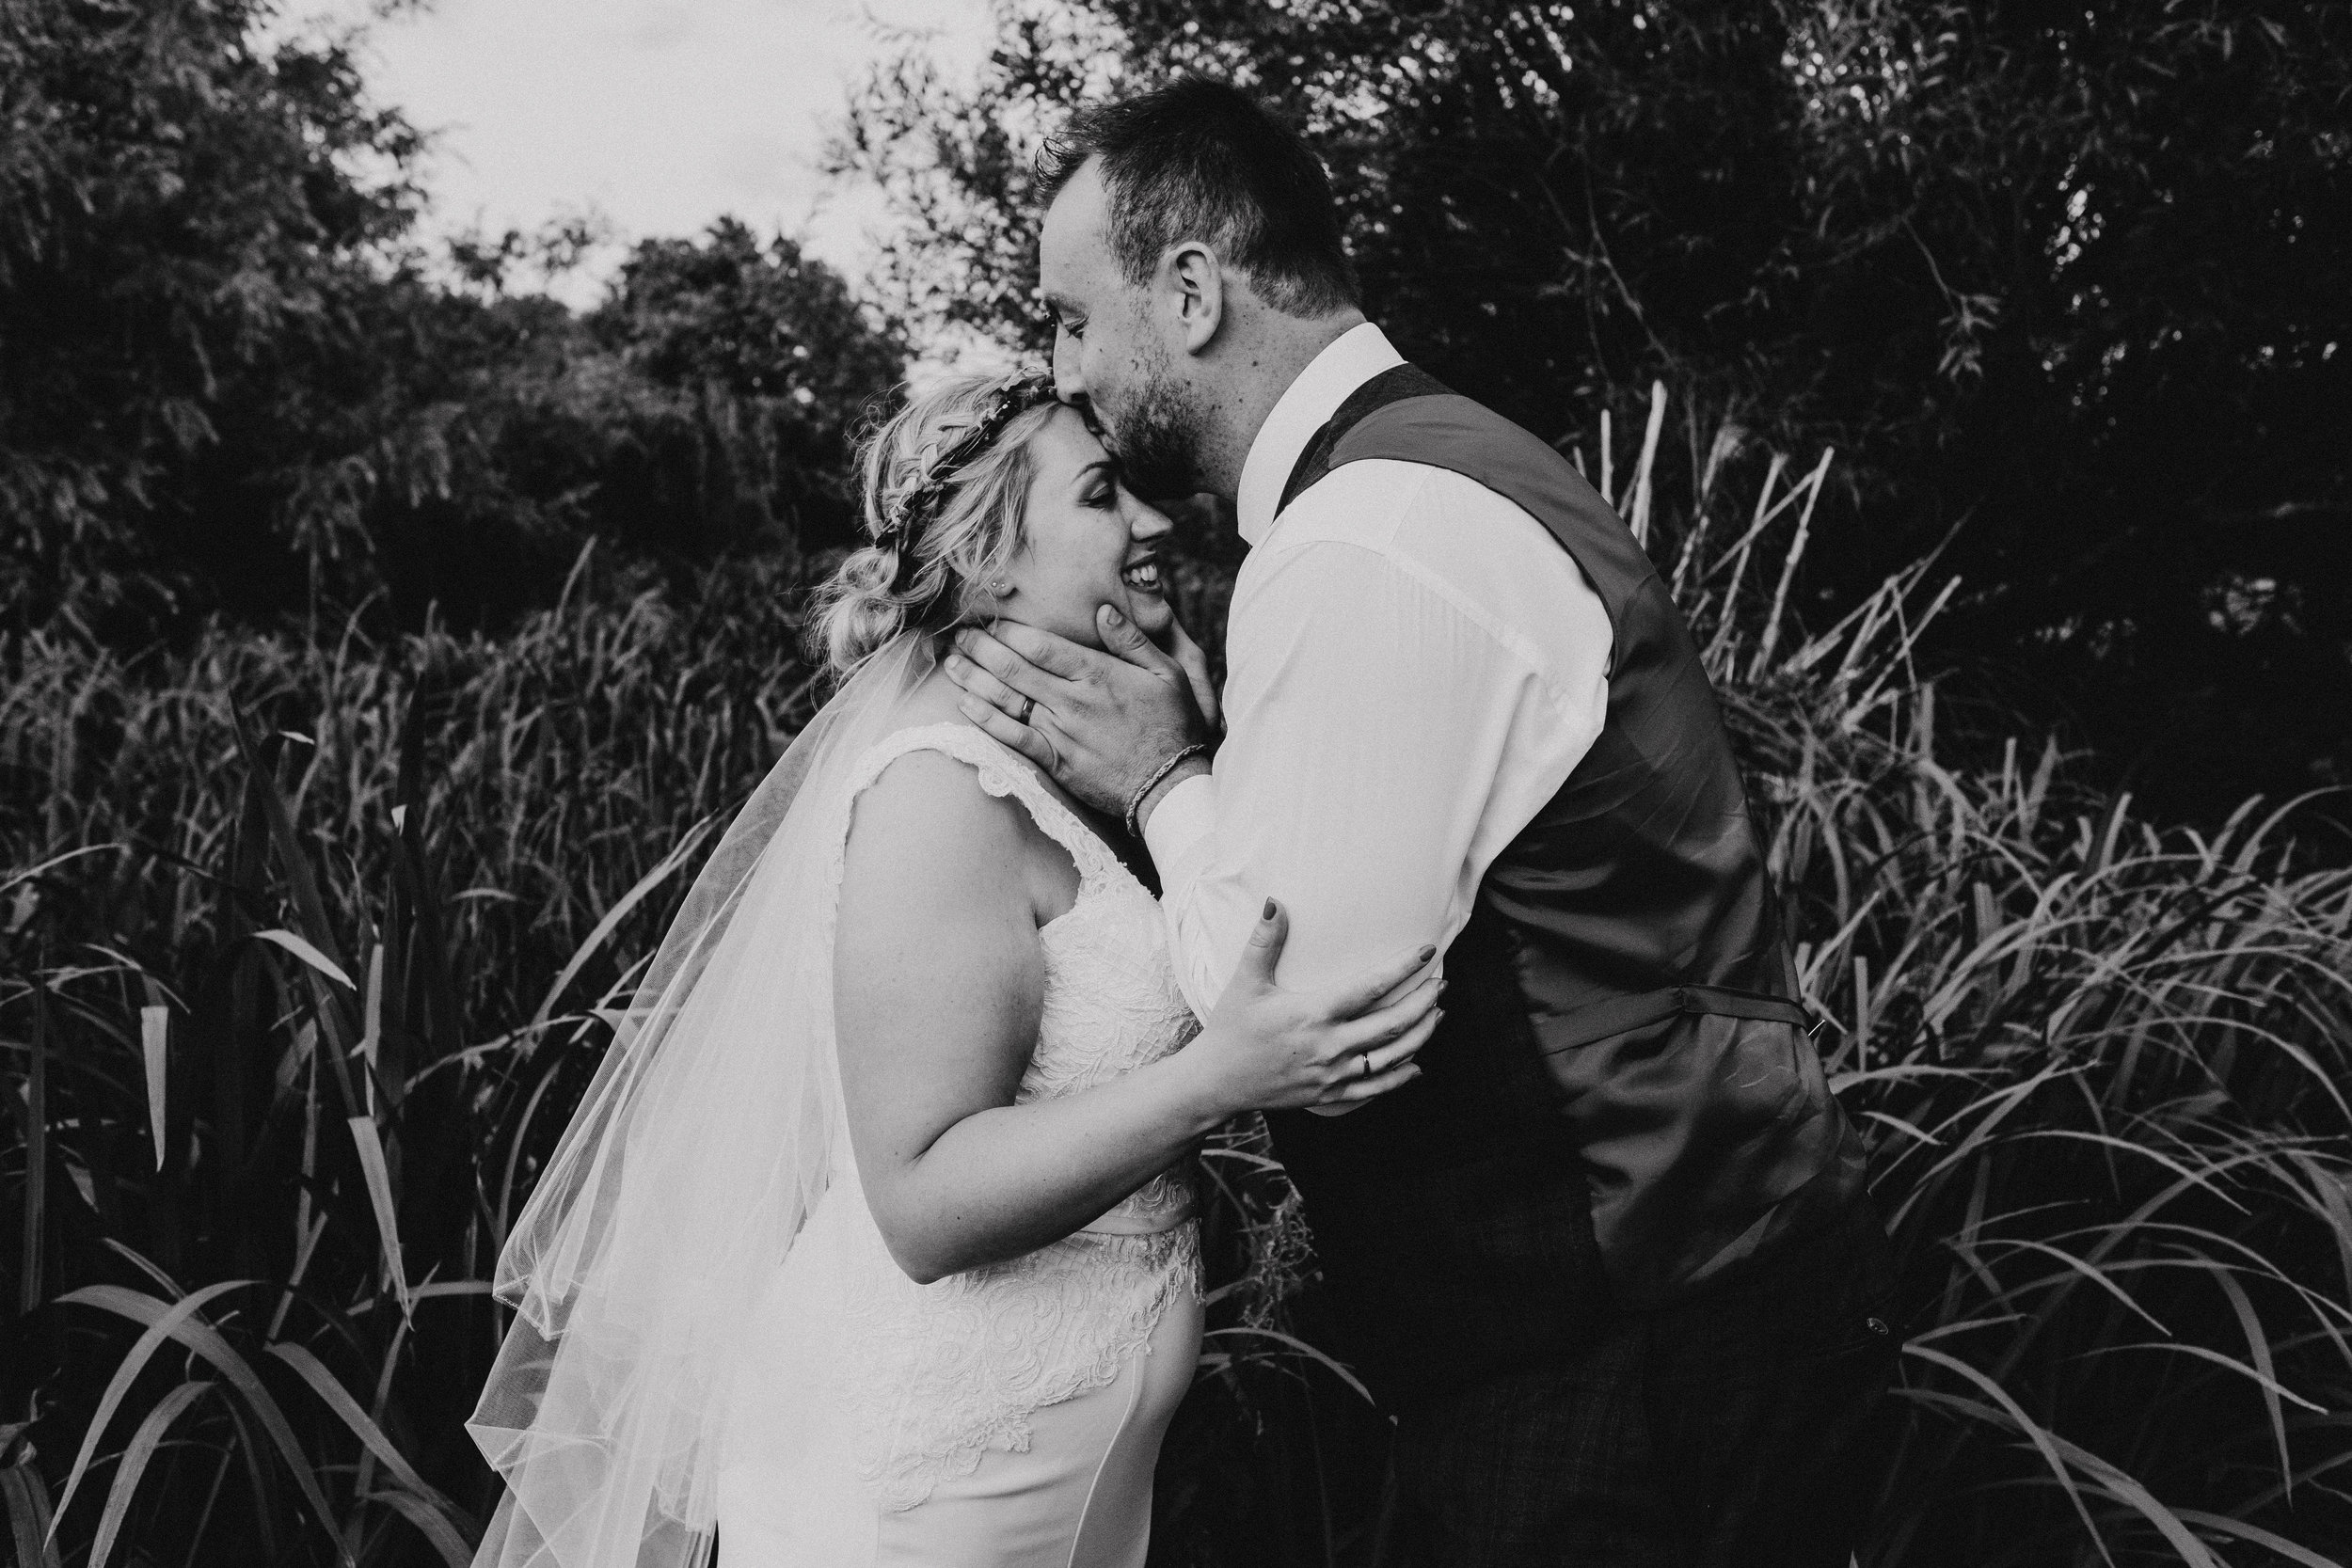 Groom kisses vegan bride on forehead